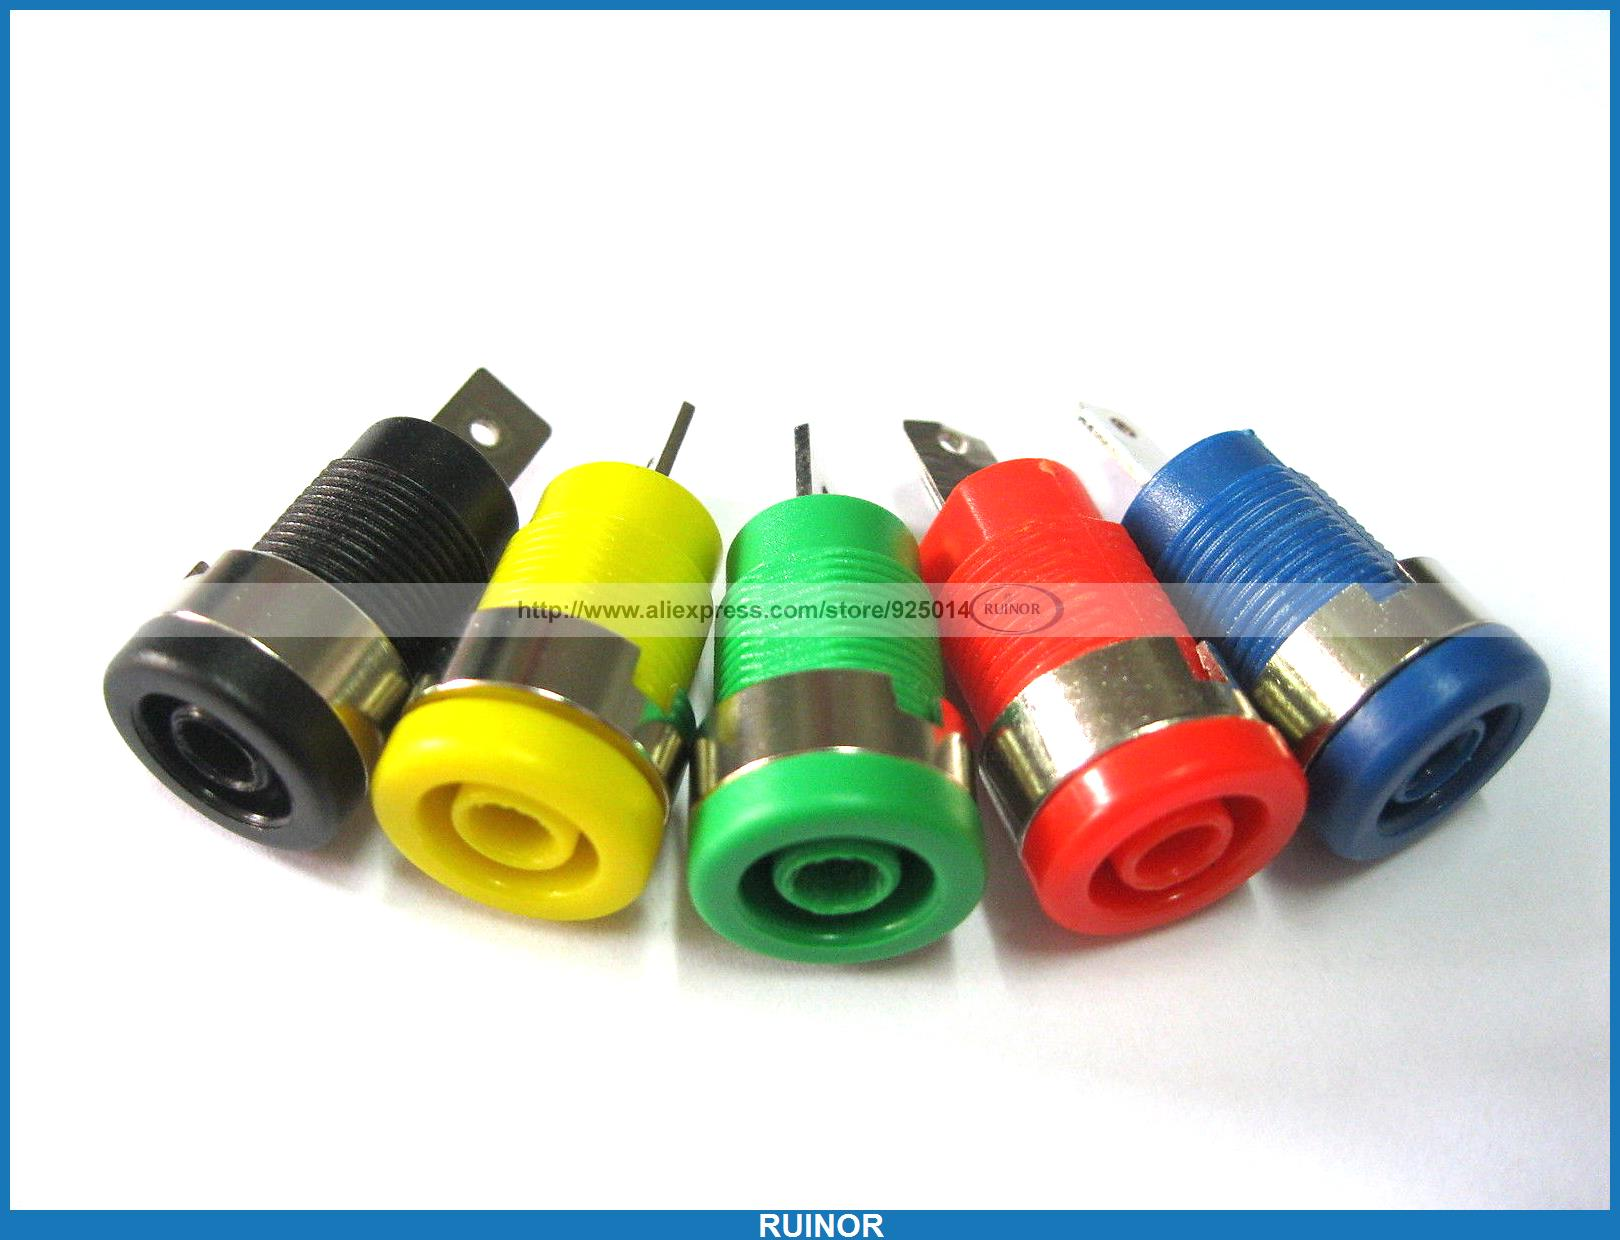 40 Pcs Binding Post Banana Jack for 4mm Safety Protection Plug 5 Colors SL2075 areyourshop sale 4 pcs double gold plated dual insulated binding post for 4mm banana jack plug power amplifier speakers